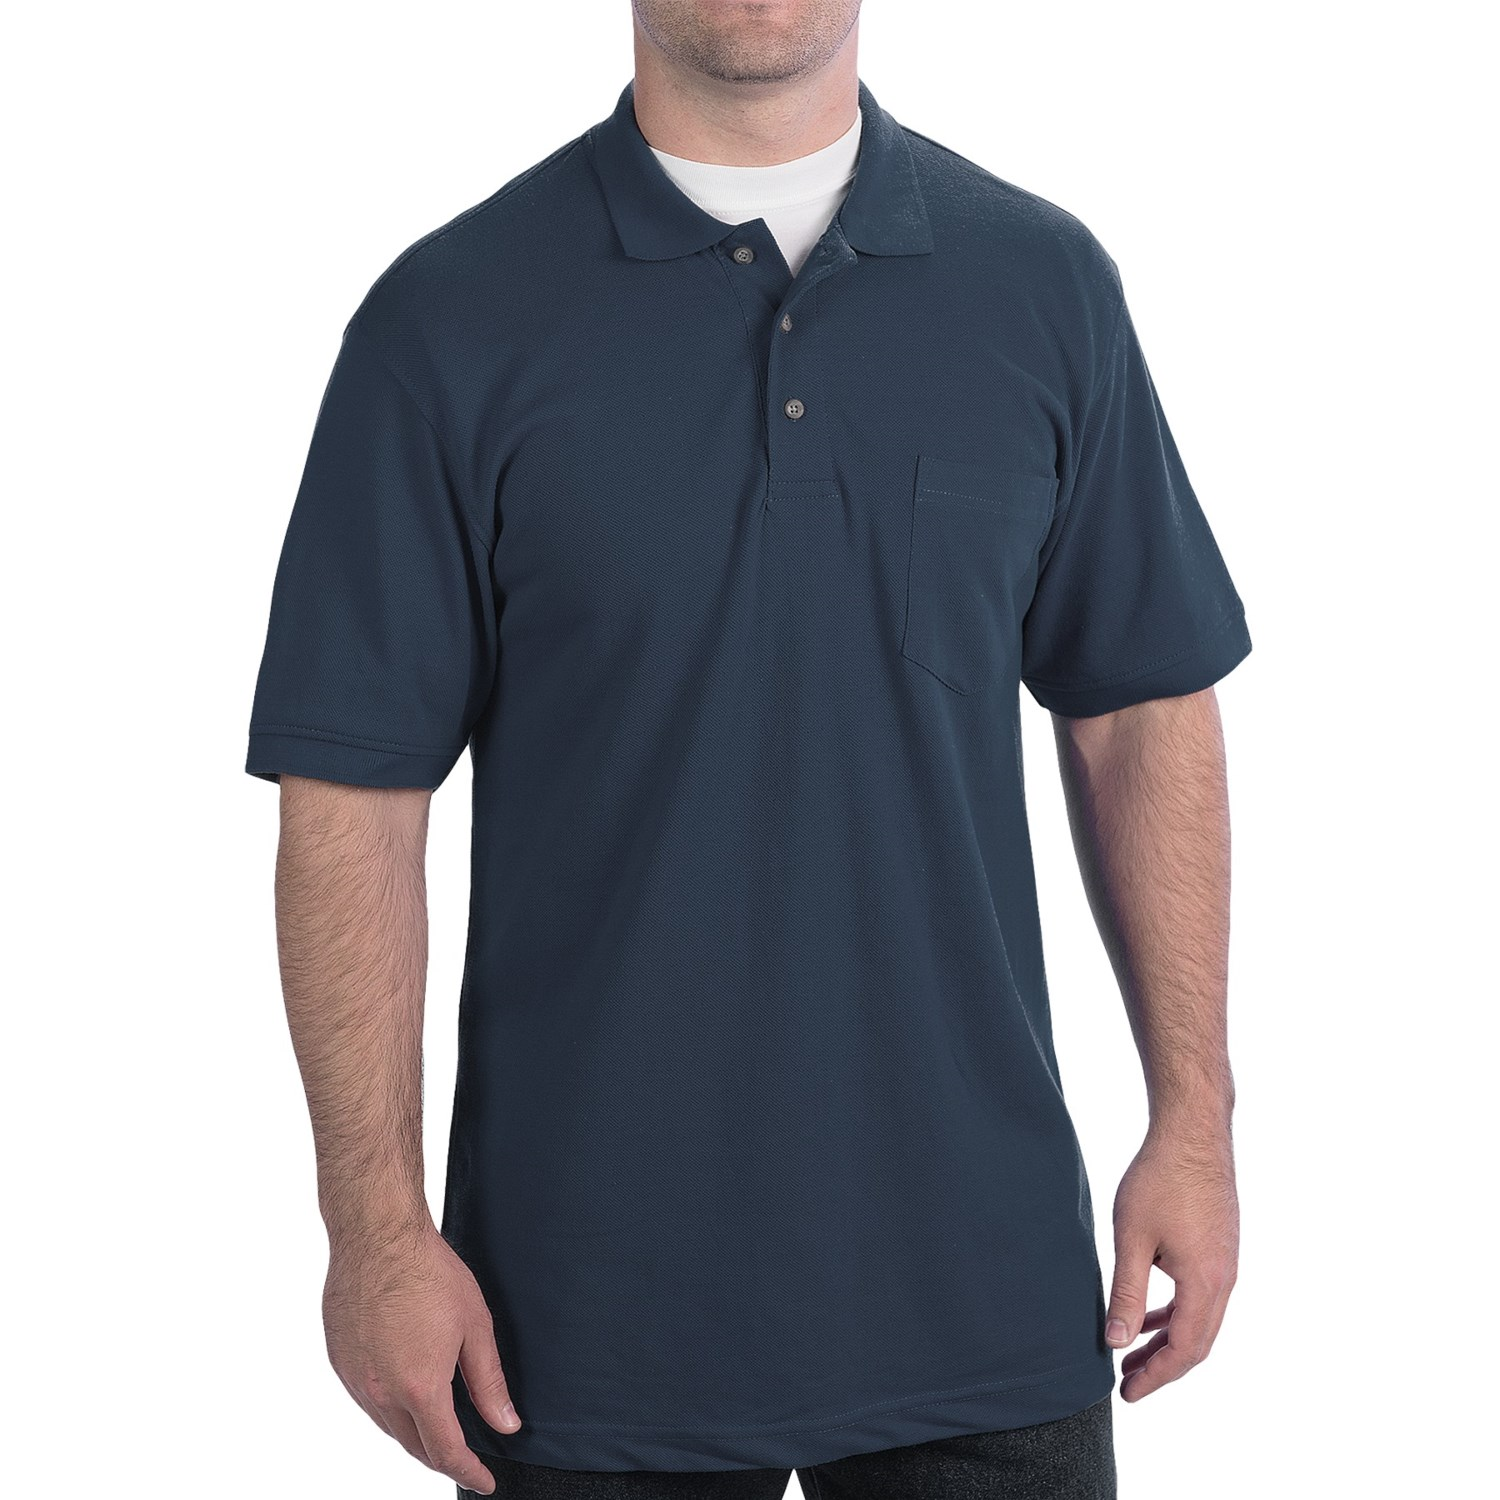 Wearguard weartuff pique polo shirt chest pocket short for Short sleeve polo shirt with pocket